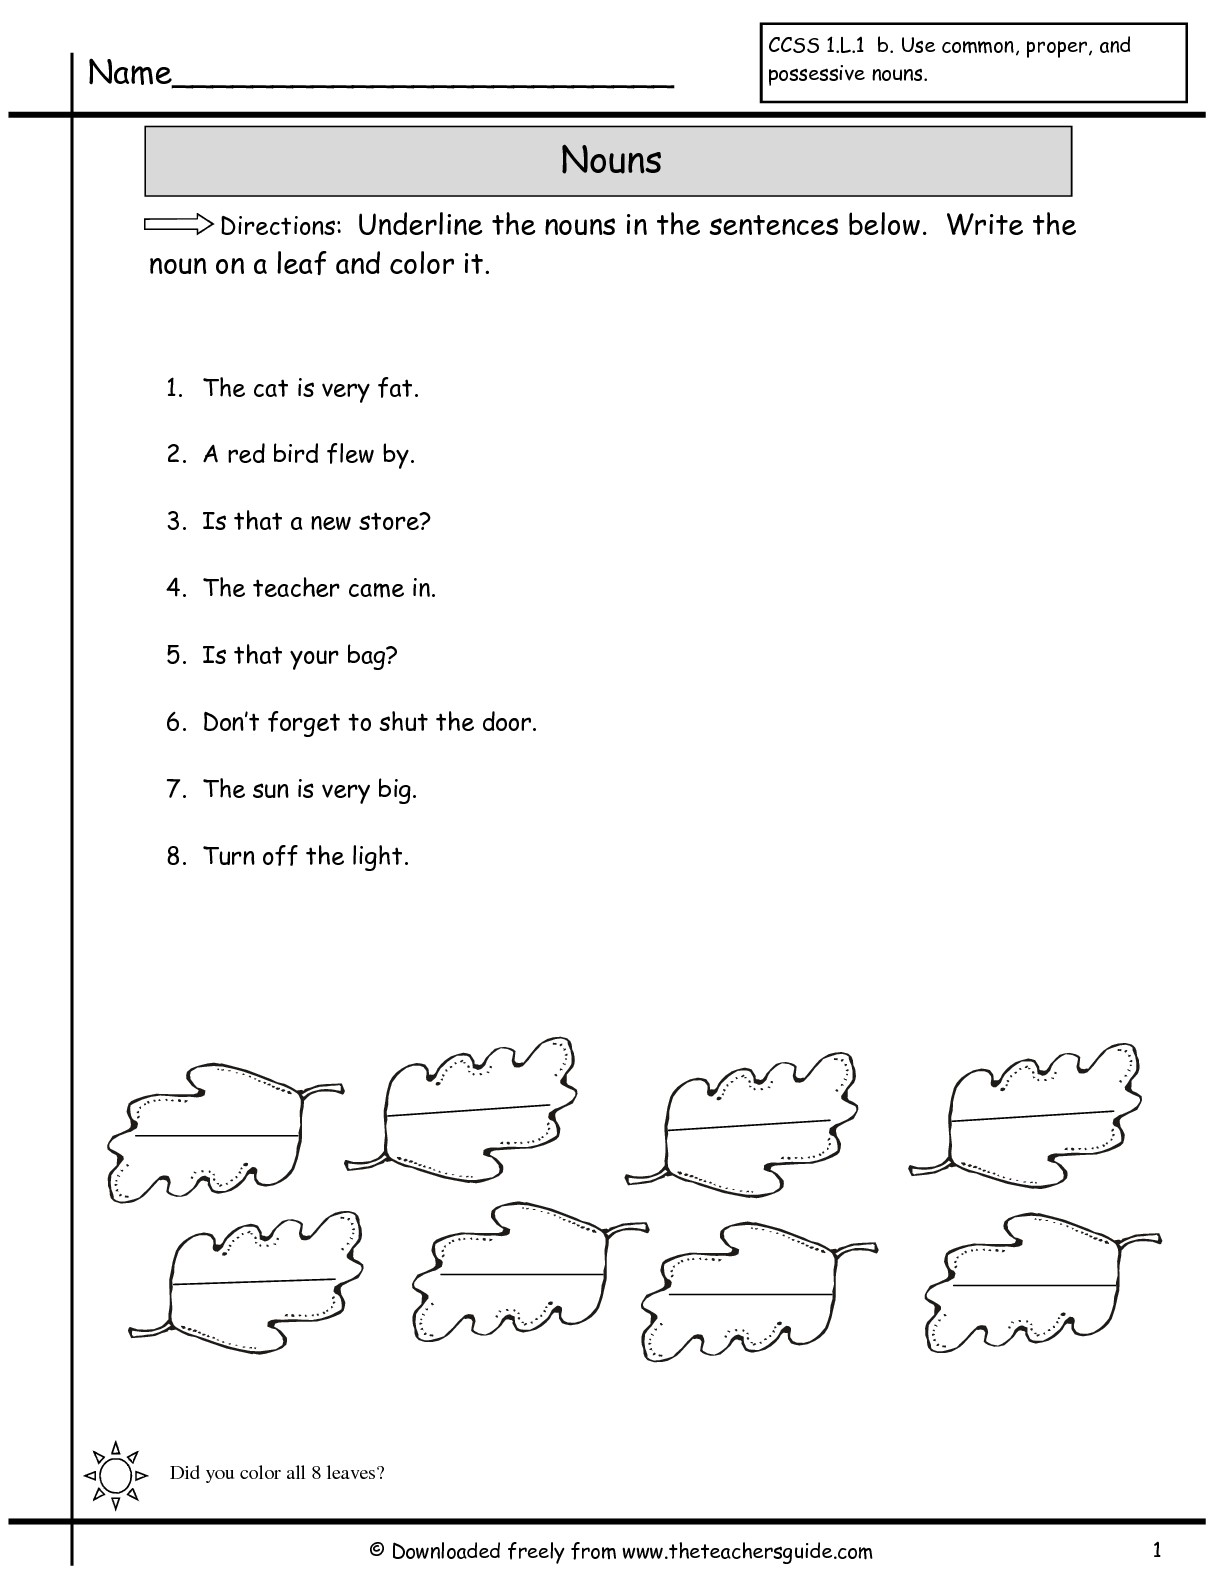 12 Best Images Of Sentences In Correct Order Worksheet